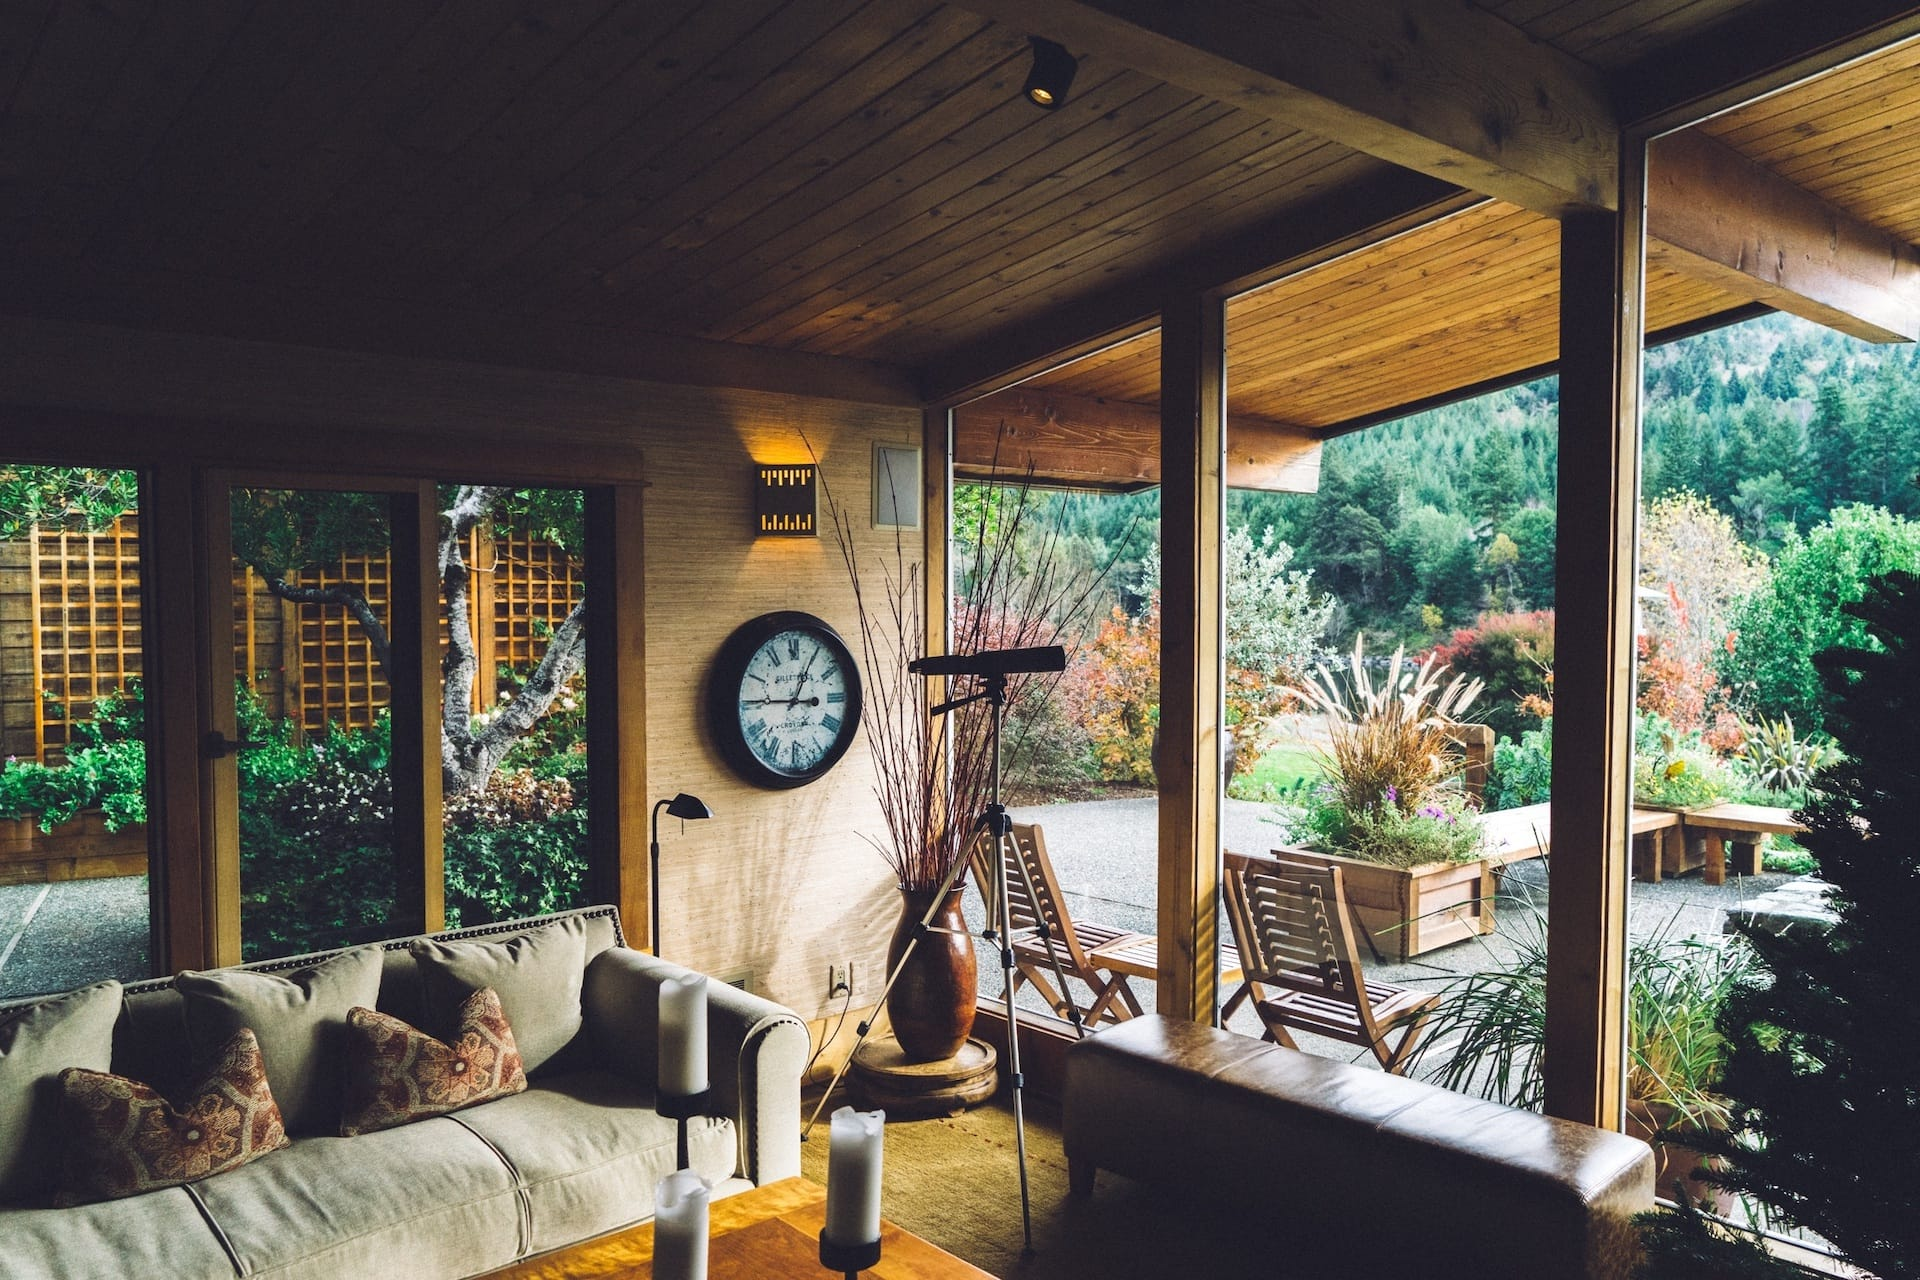 Build an Outdoor Living Room with a Permanent Roof